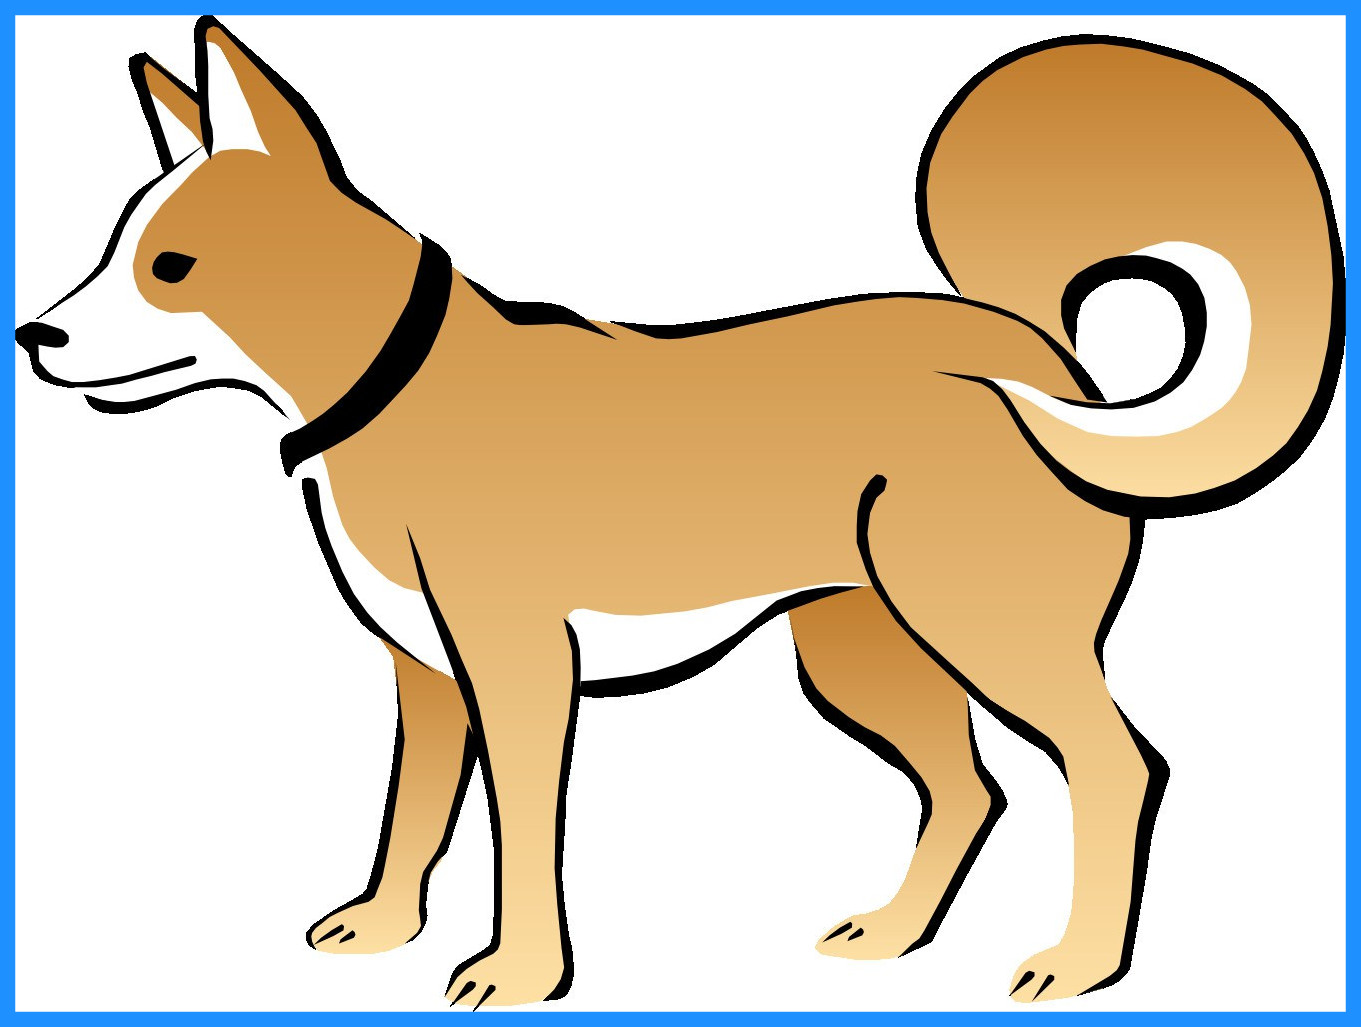 Husky Dog Clipart at GetDrawings.com | Free for personal use Husky ...